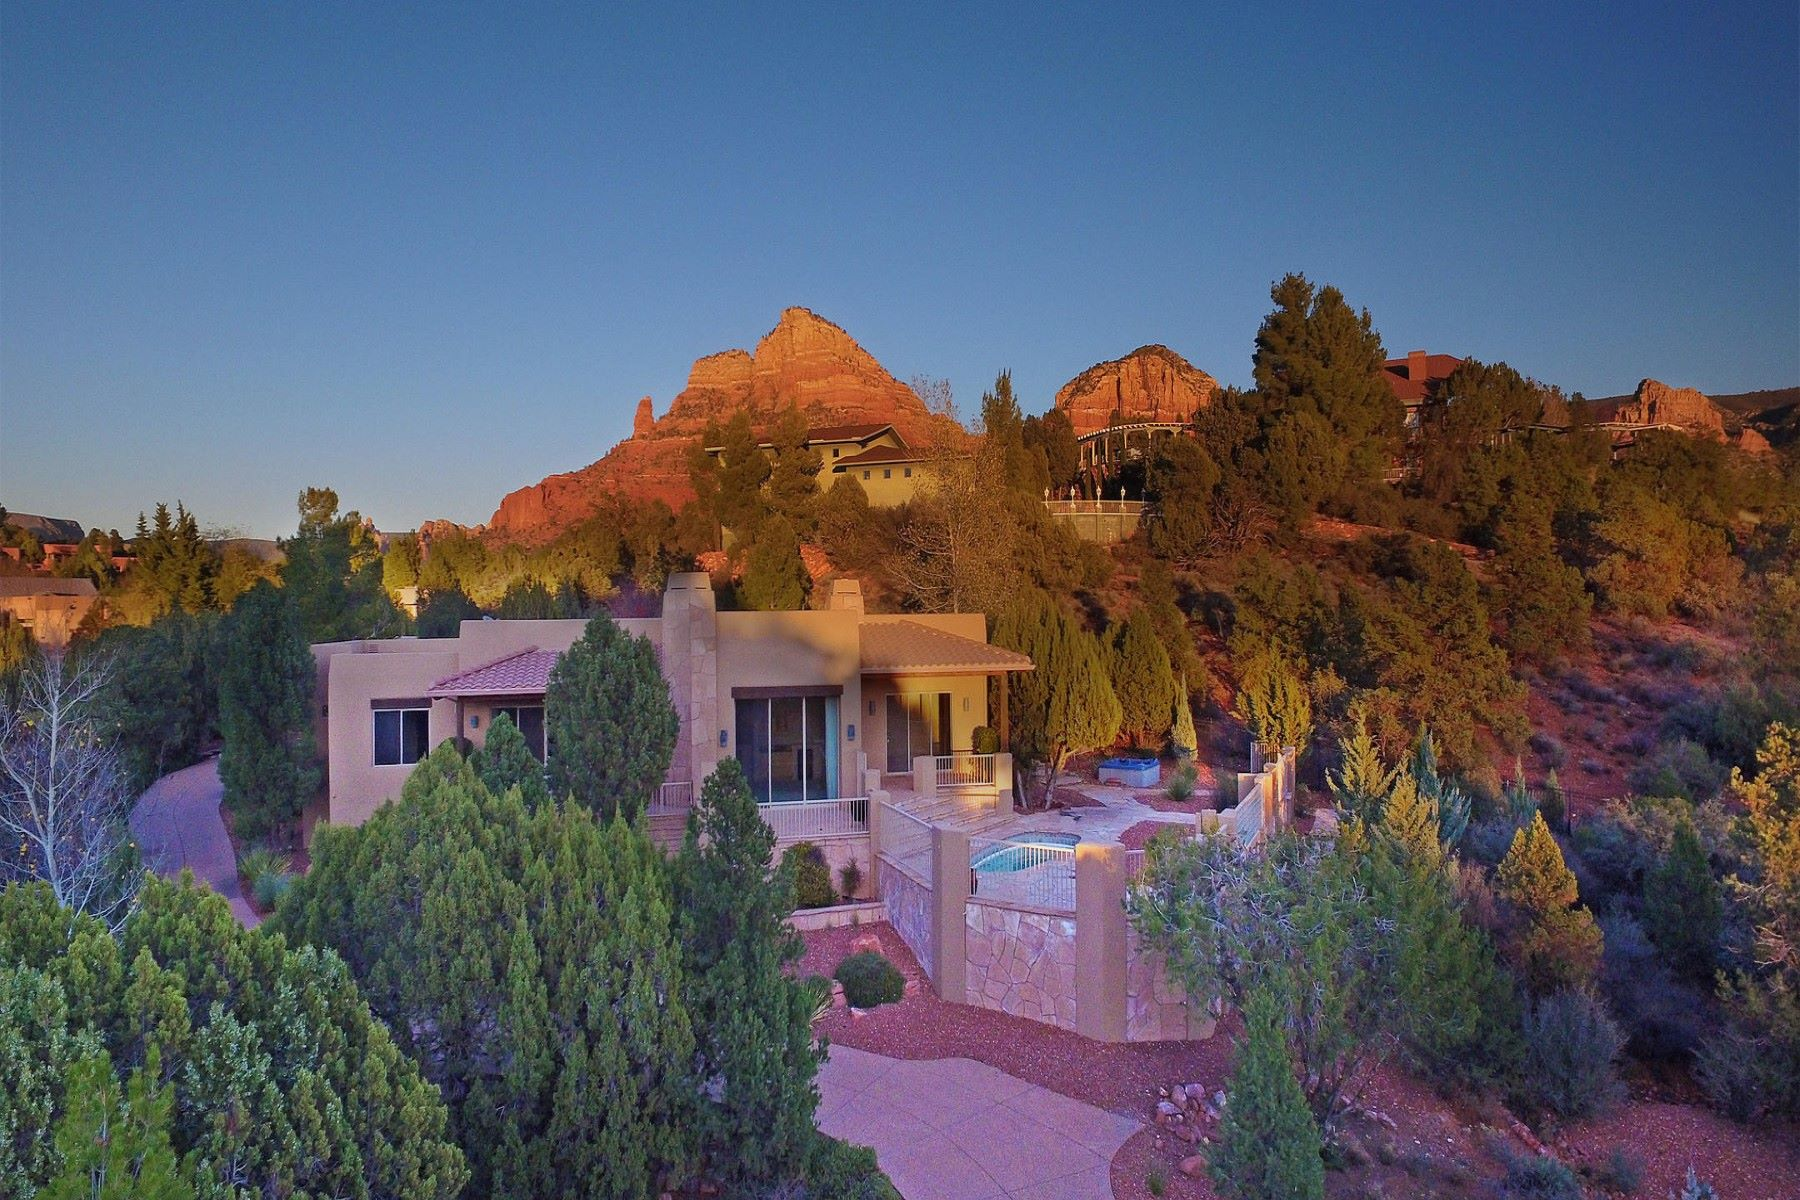 獨棟家庭住宅 為 出售 在 Gorgeous home with captivating views 45 Scenic Drive Sedona, 亞利桑那州, 86336 美國